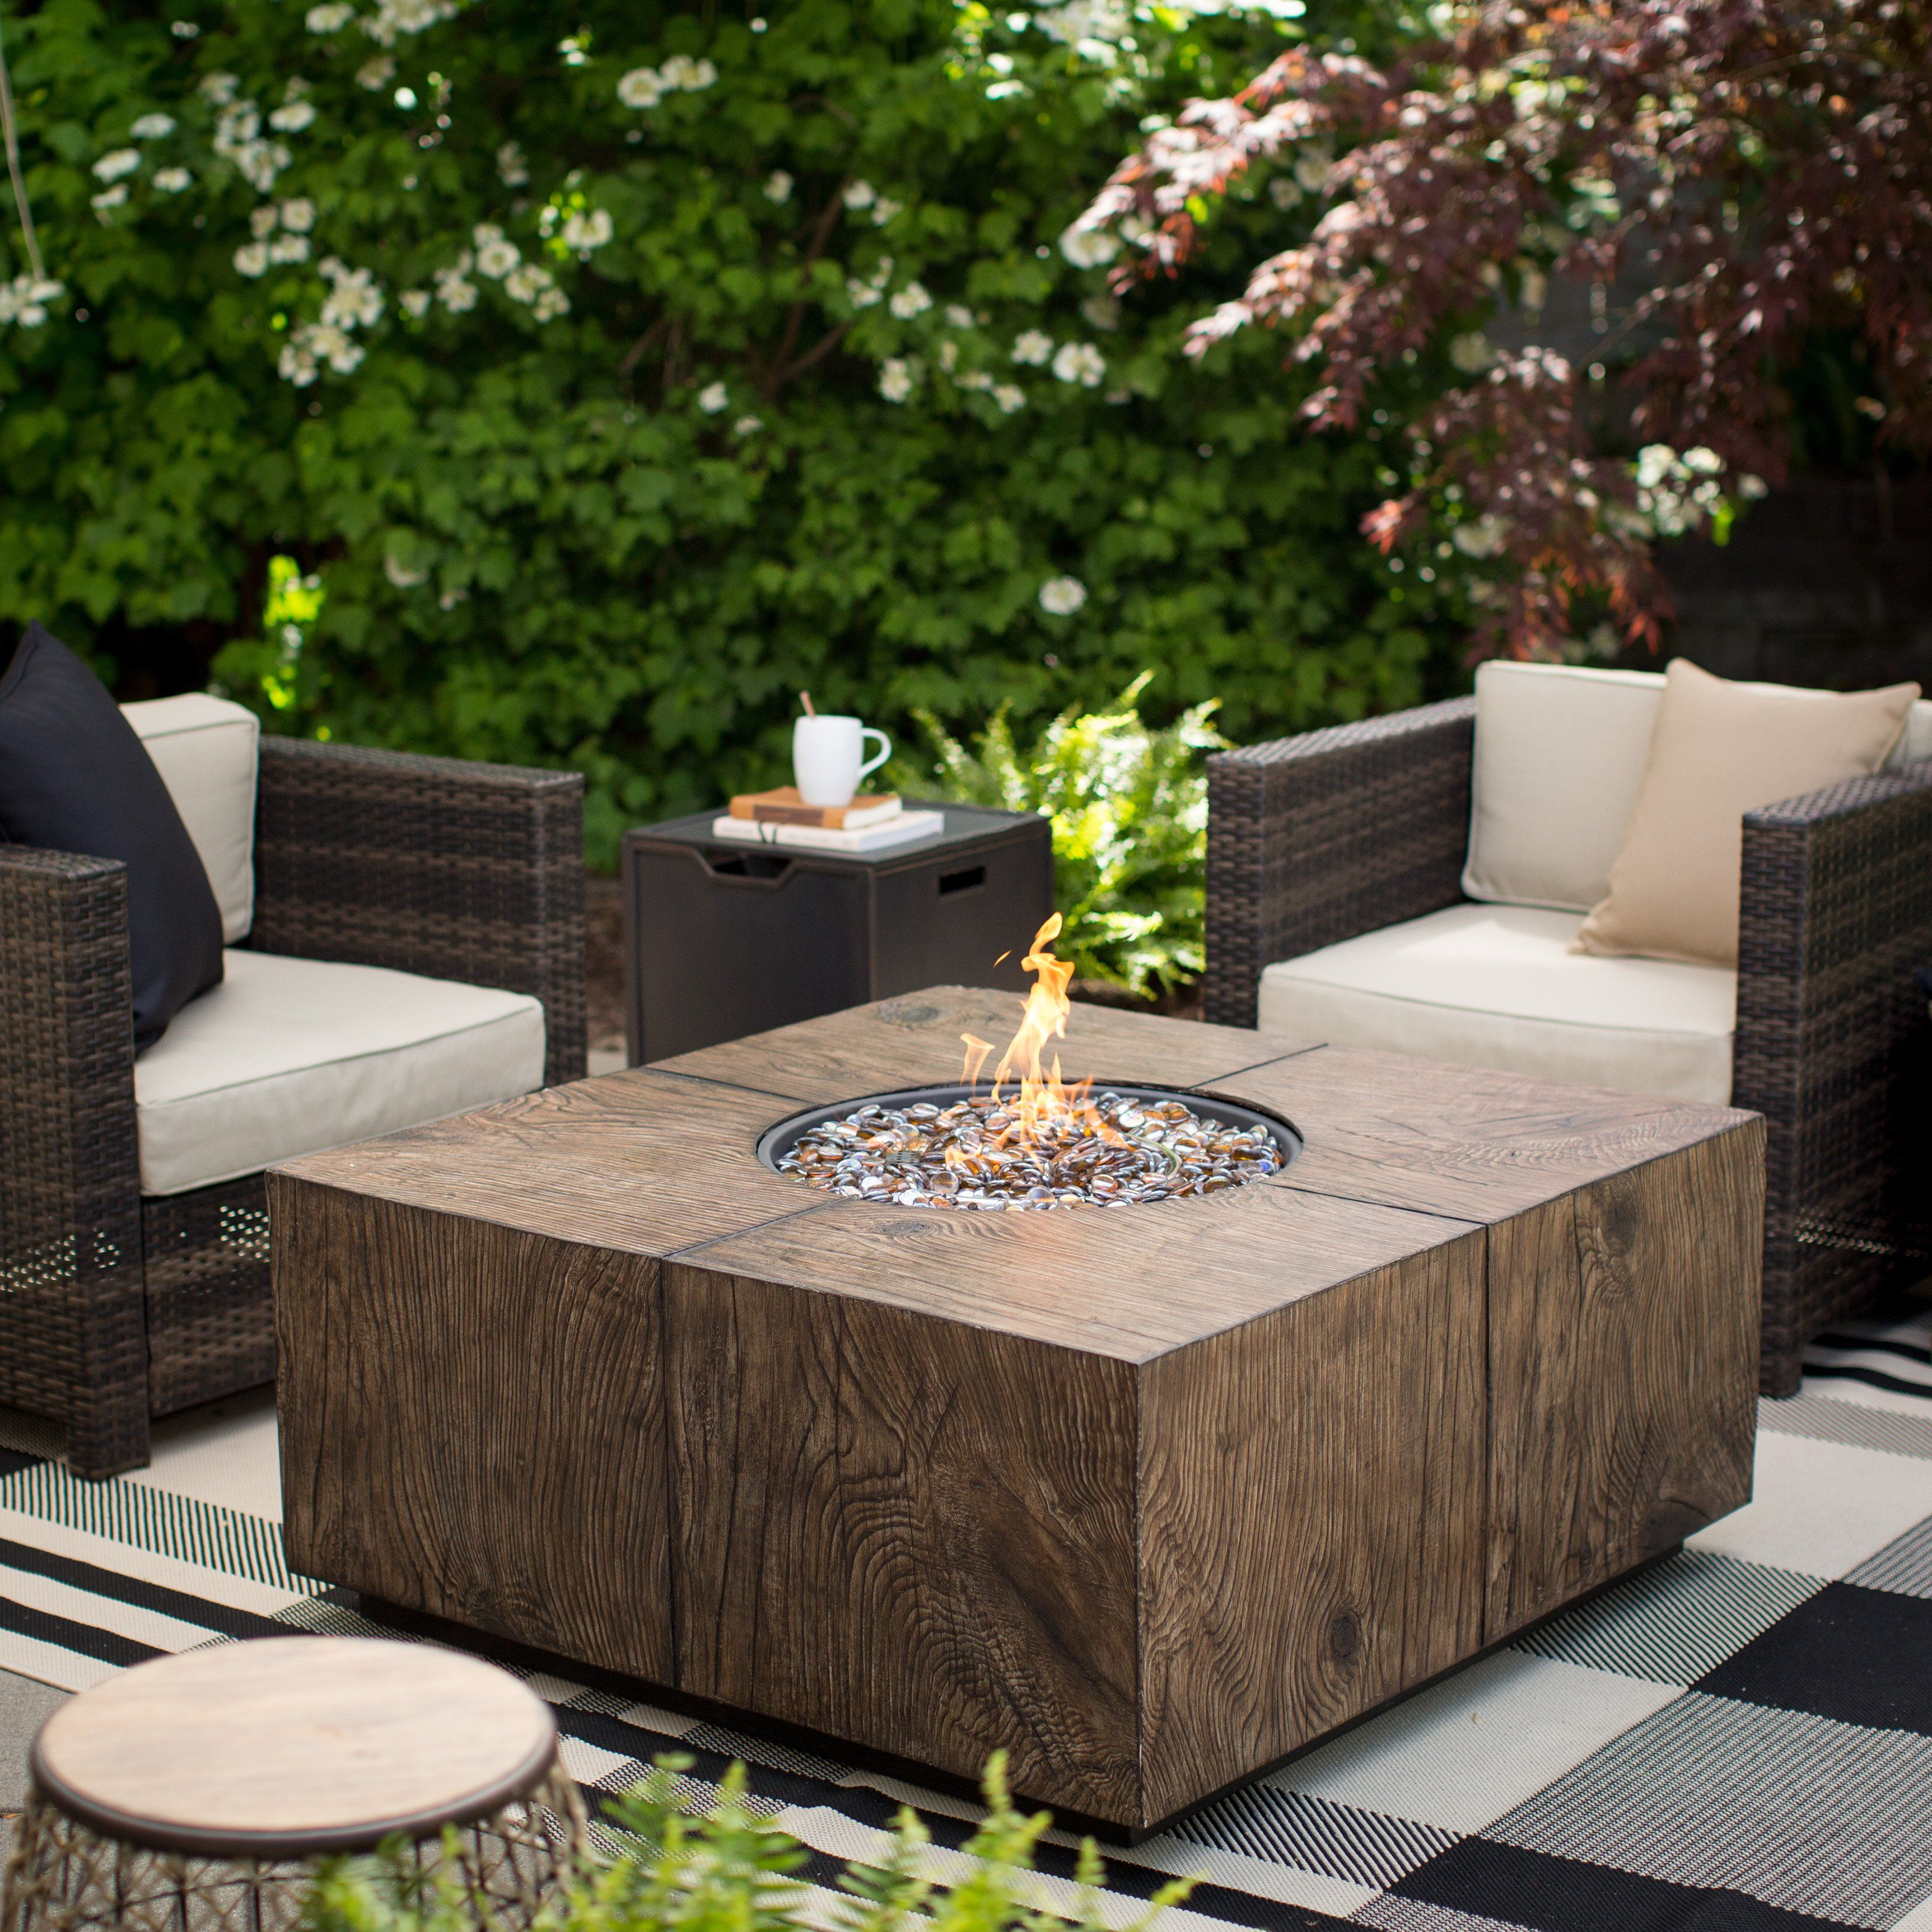 0012b9434d8a7defb987e71047d34900 Top Result 50 Lovely Stone Propane Fire Pit Pic 2018 Hgd6